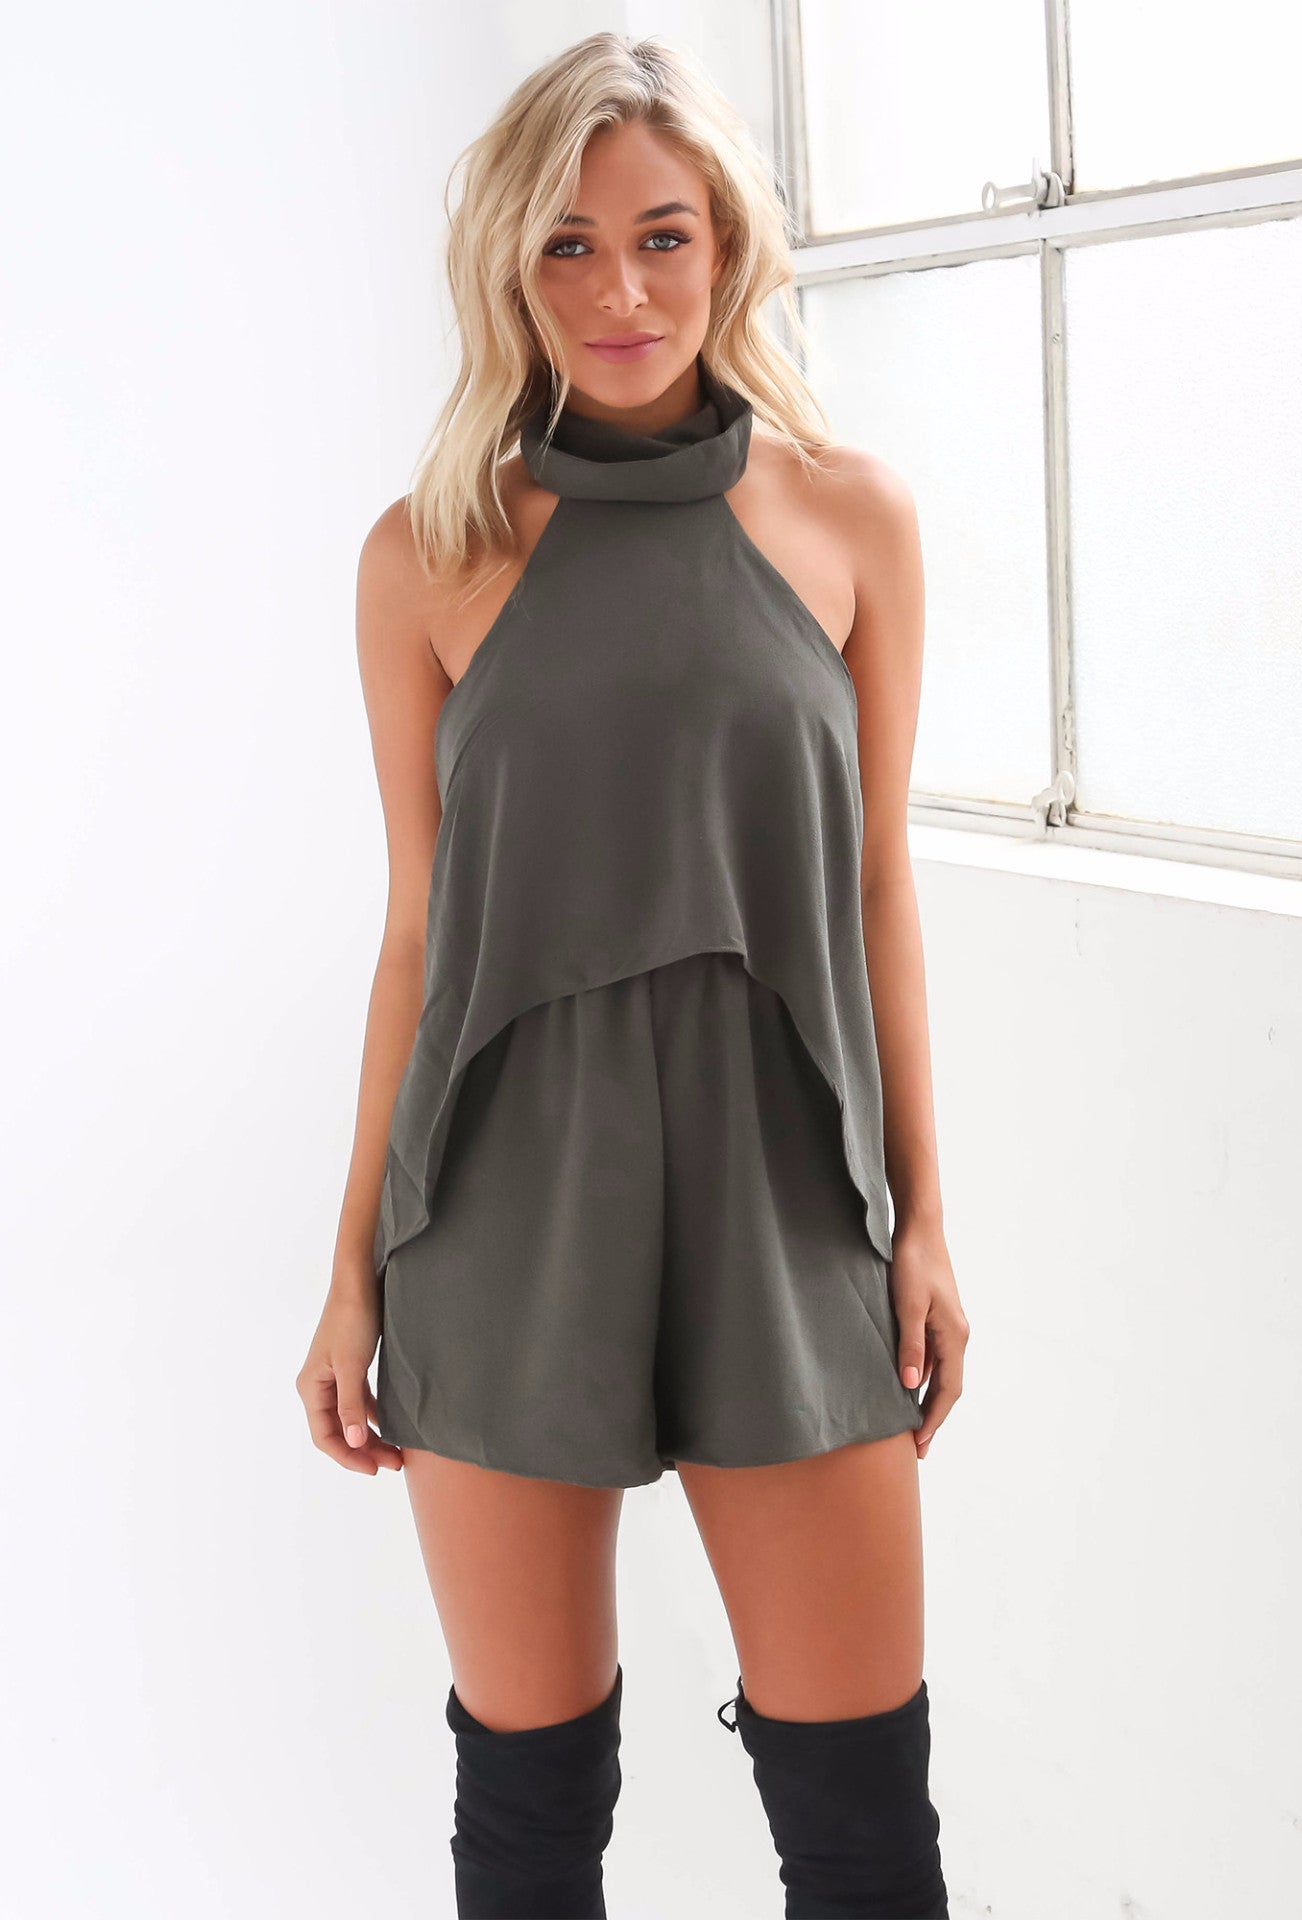 Another Chance Playsuit - Khaki - Lovecy - 1